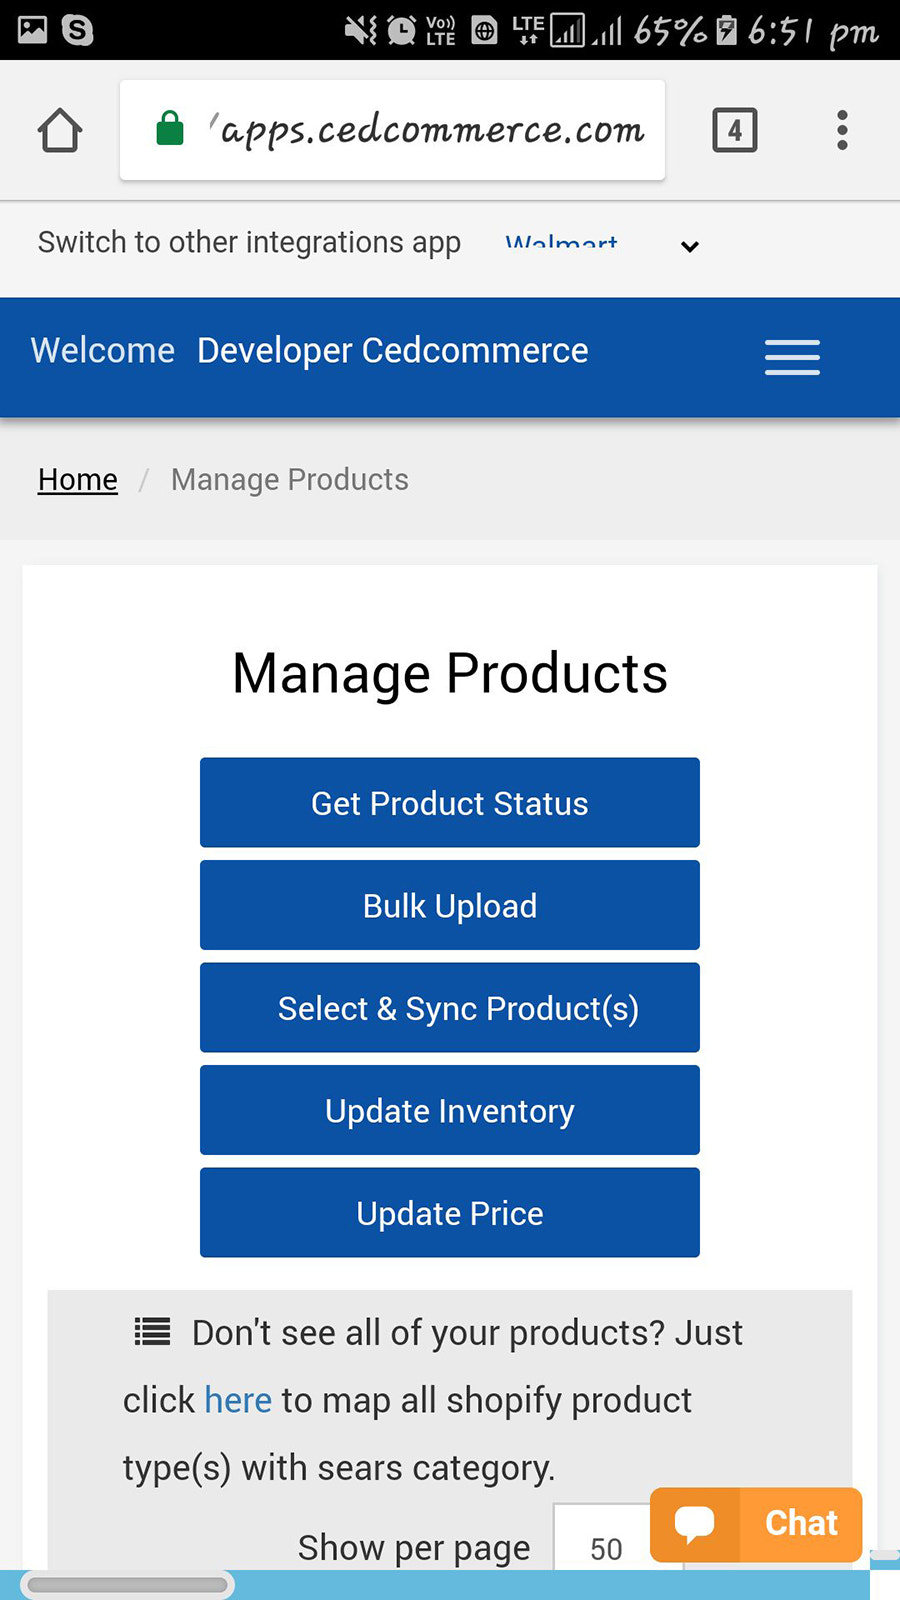 Manage Products Section